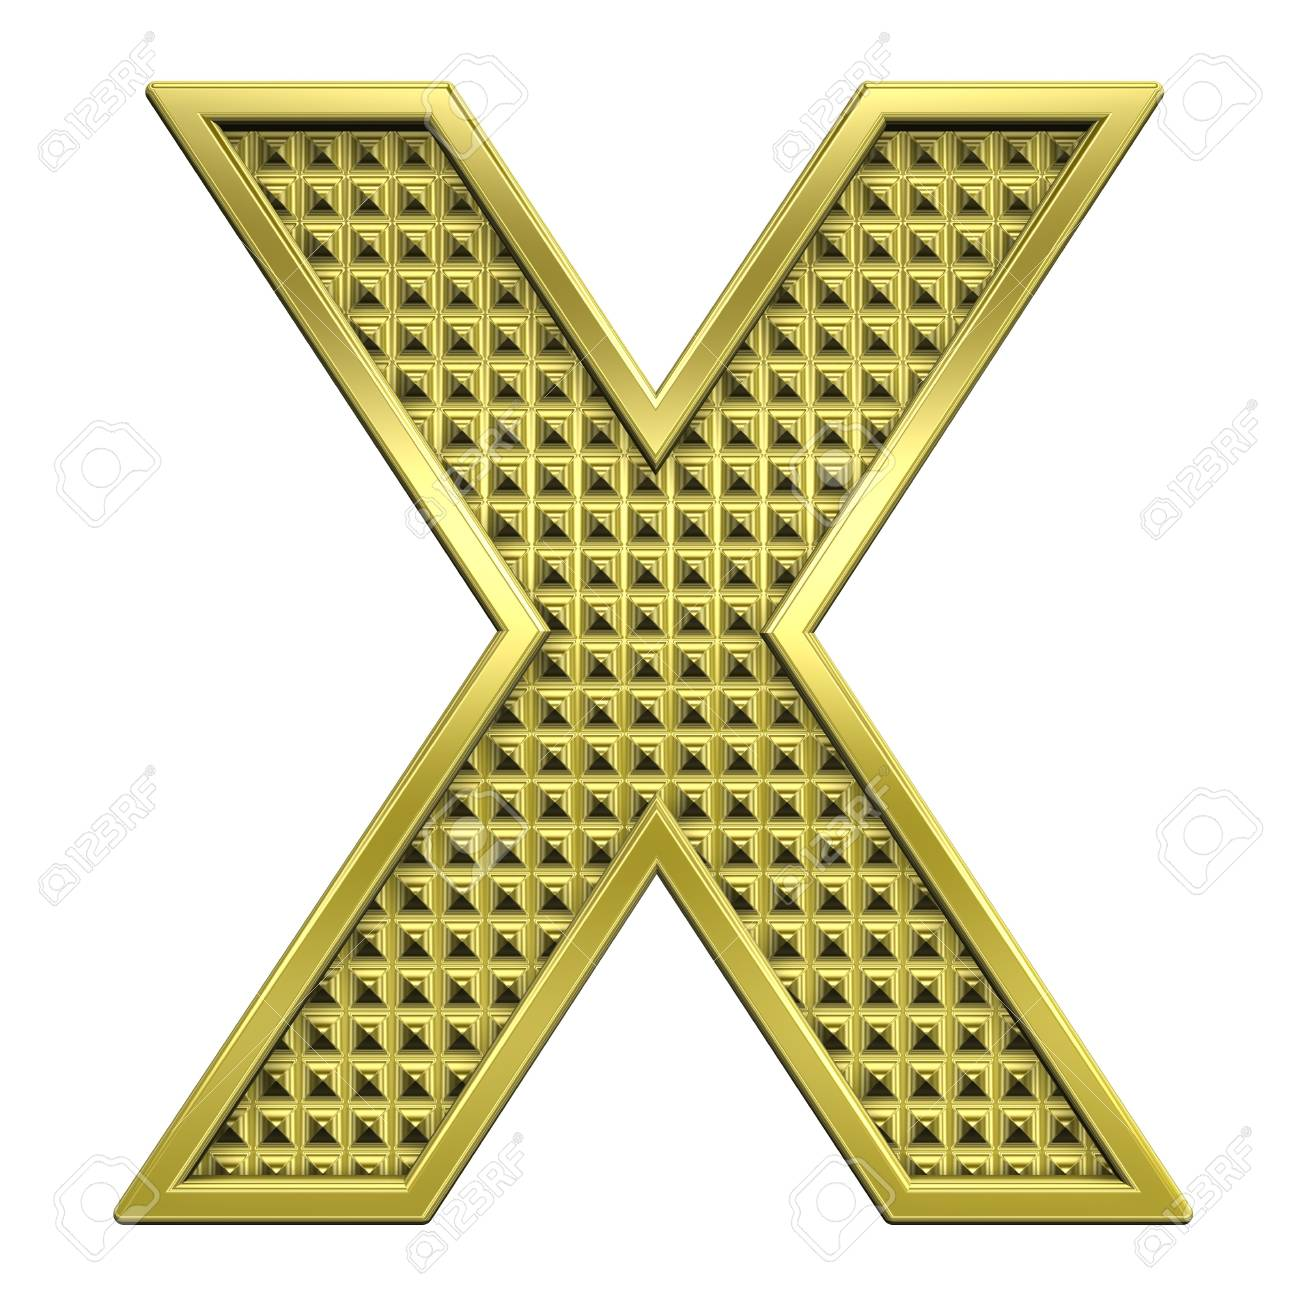 One letter from knurled gold alphabet set, isolated on white. Computer generated 3D photo rendering. Stock Photo - 5584043